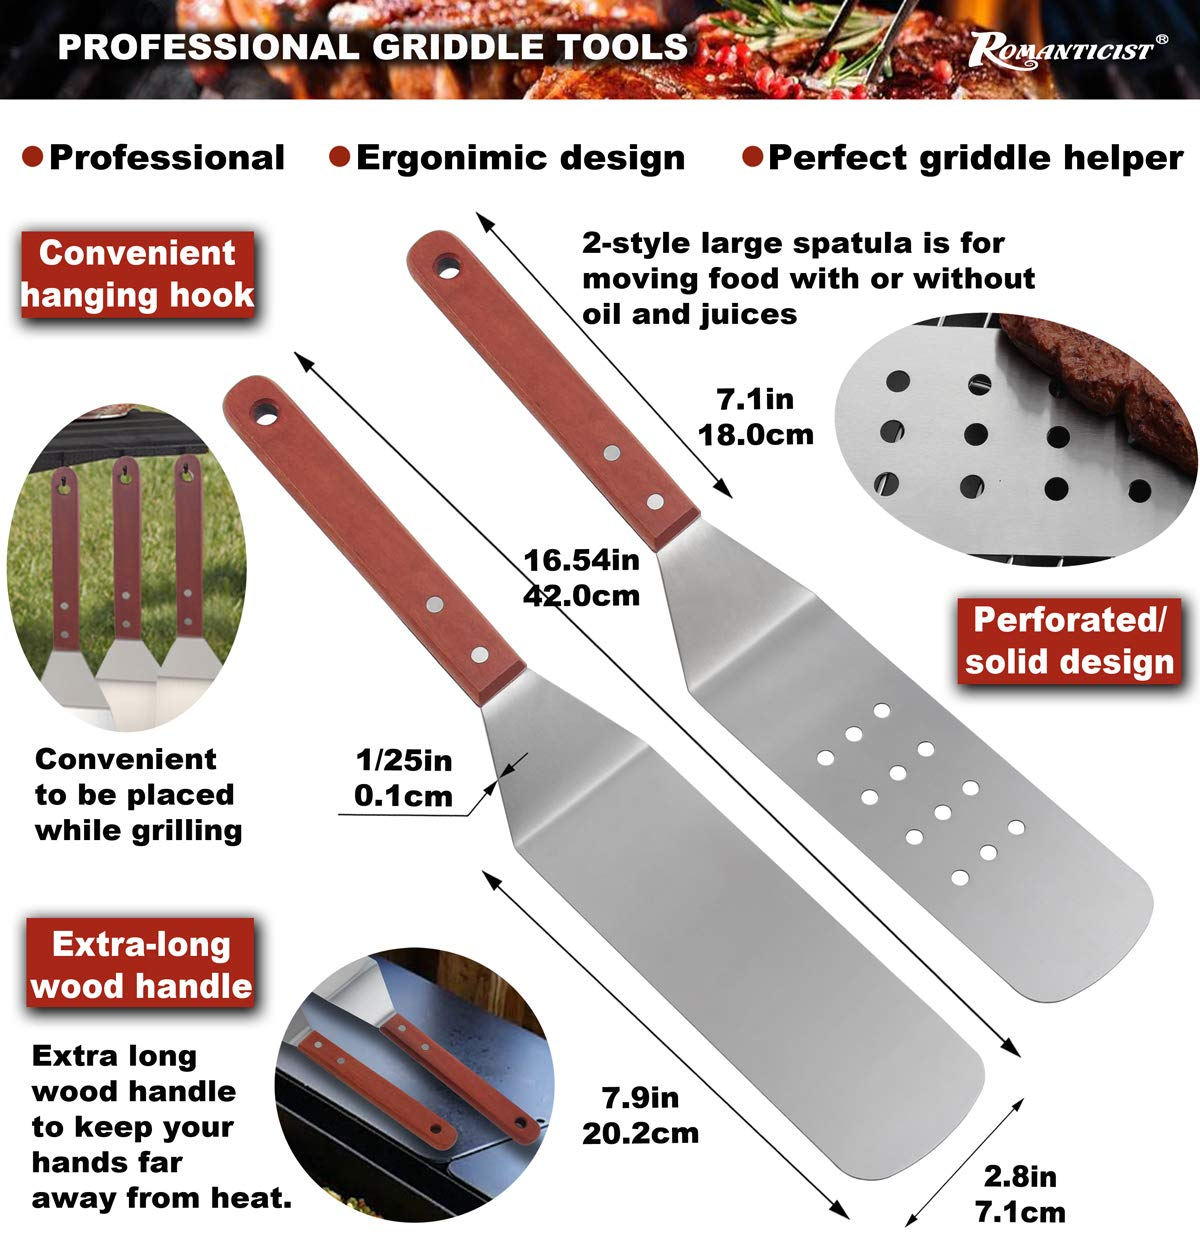 ROMANTICIST 8pc Griddle Accessories with 7'' Extra Long Deluxe Wood Handle - Premium Griddle Spatula Set in Carrying Bag for Flat Top Grill Hibachi - Perfect Grill Gift for Men Dad on Fathers Day by ROMANTICIST (Image #2)